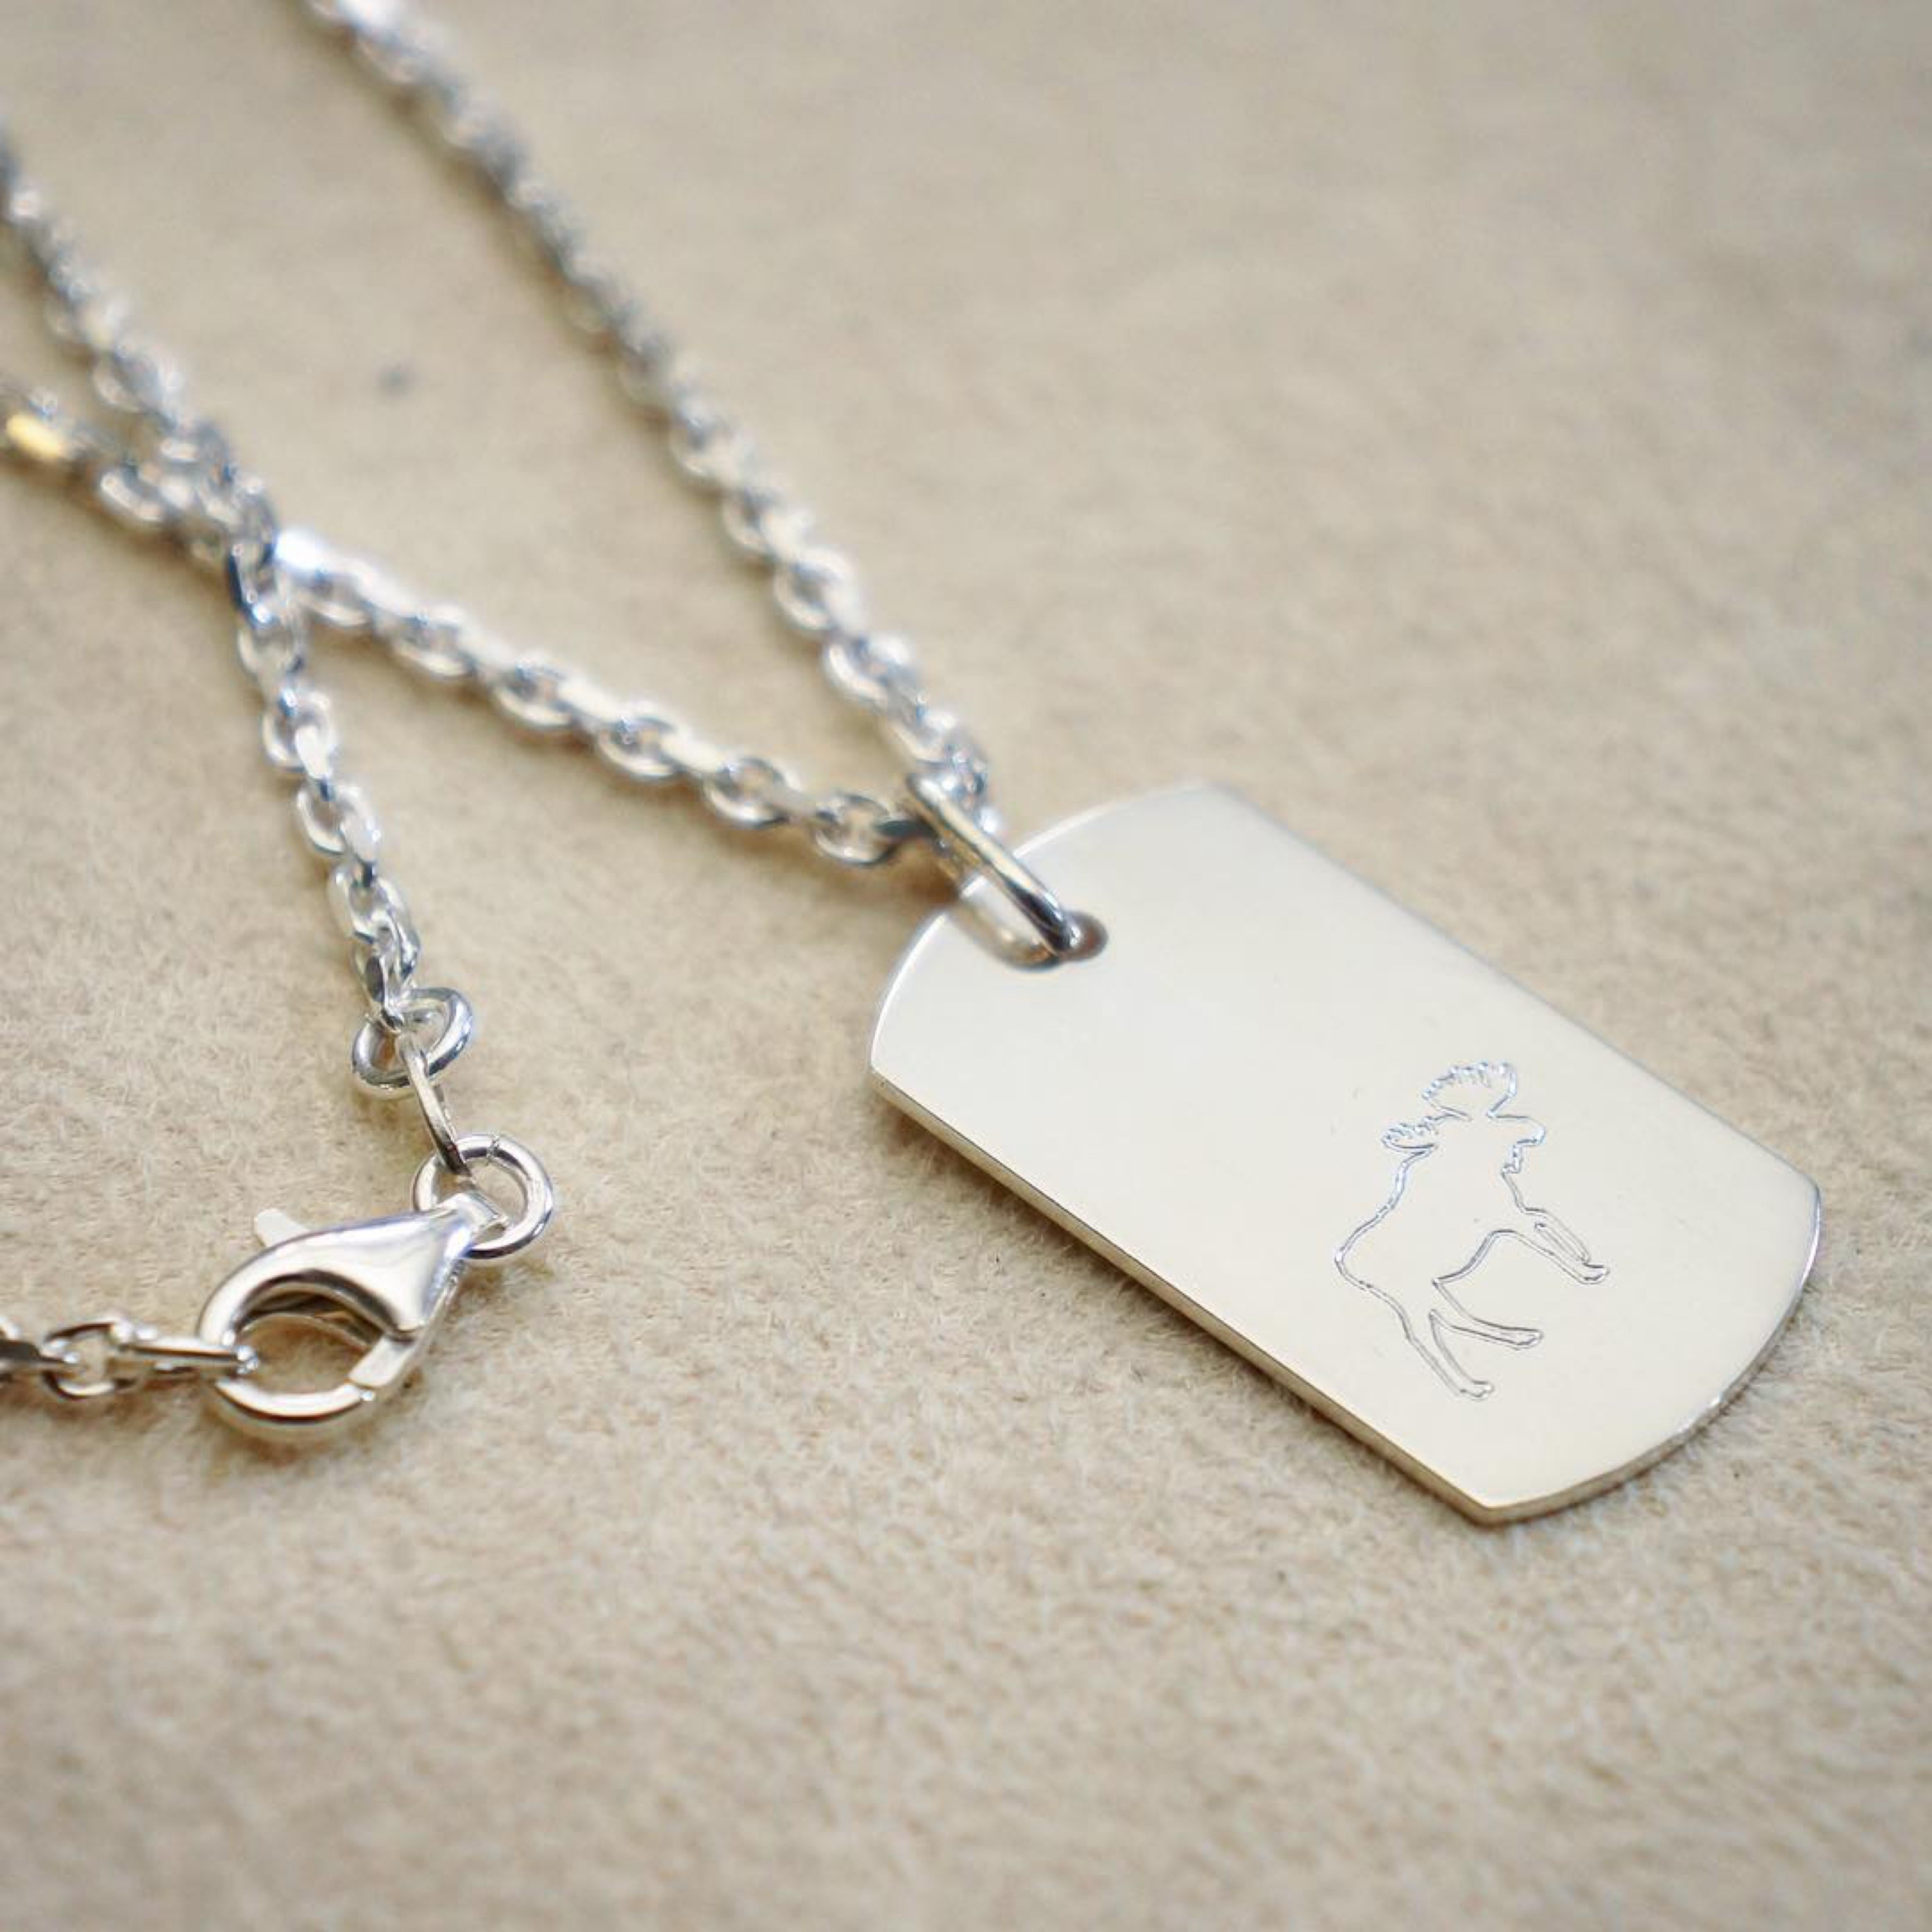 DOG TAG WITH MOOSE